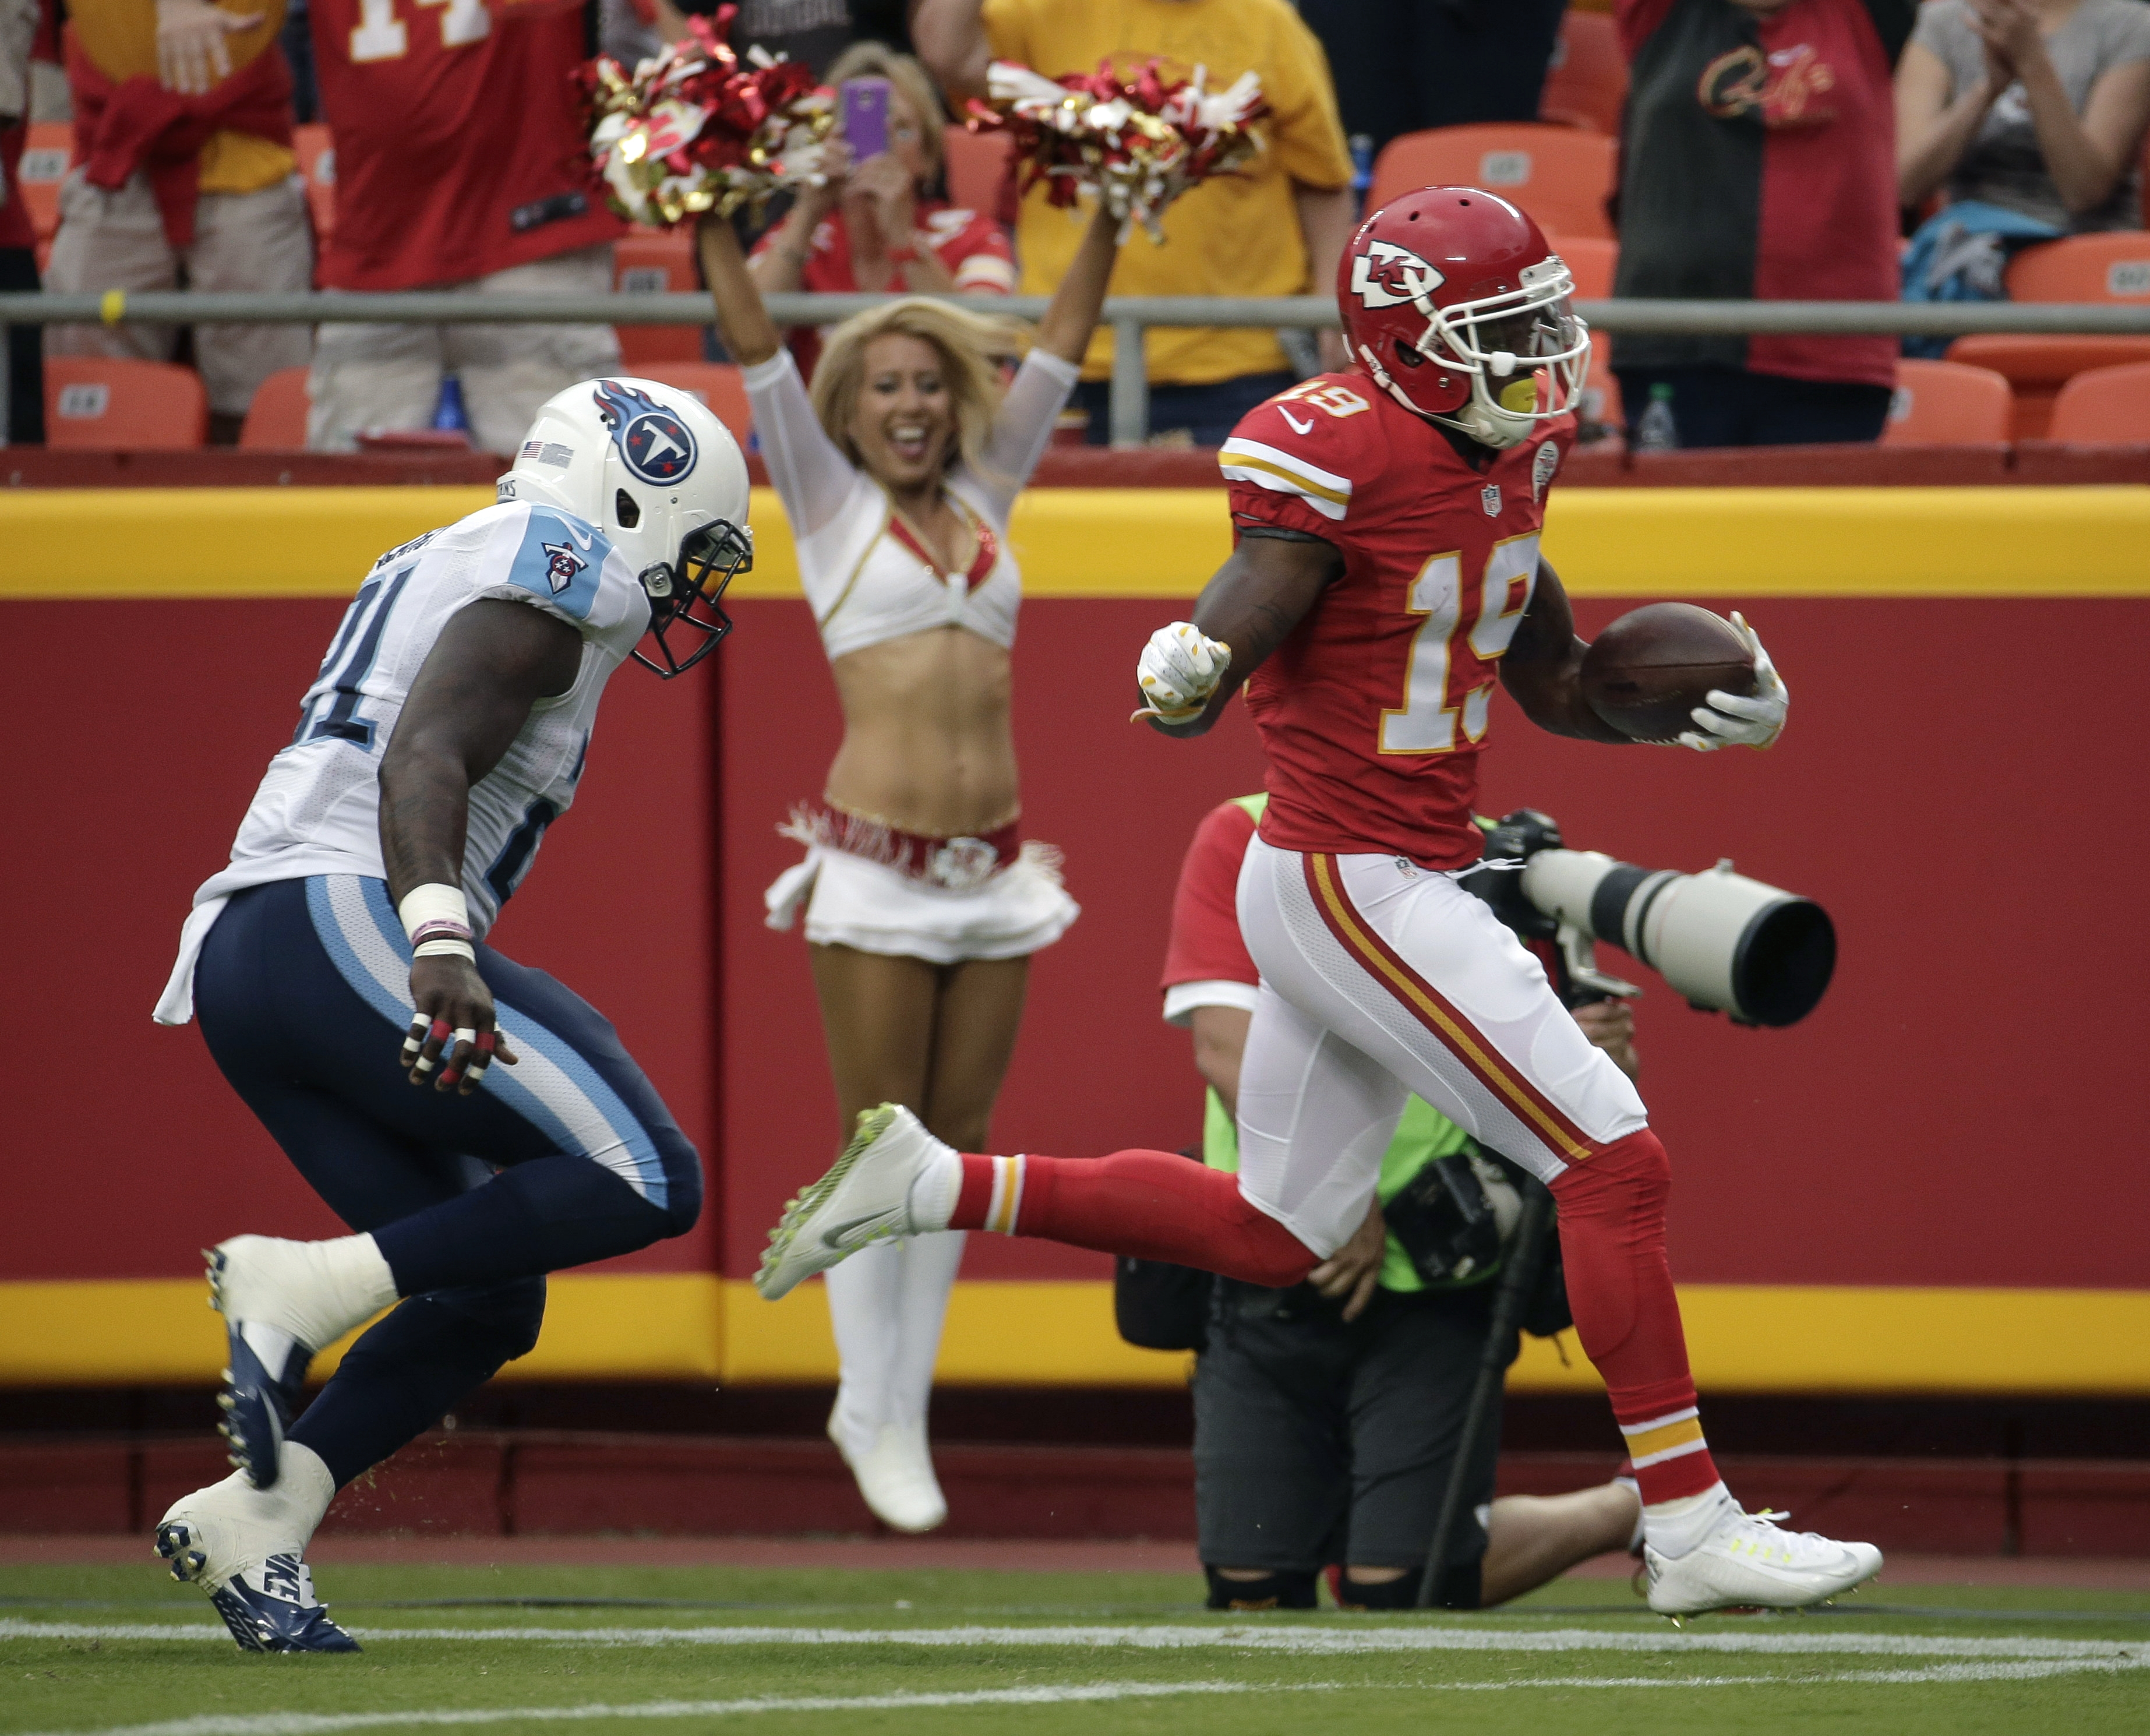 Kansas City Chiefs wide receiver Jeremy Maclin (19) scores a touchdown as he is pursued by Tennessee Titans safety Da'Norris Searcy (21) during the first half of a preseason NFL football game at Arrowhead Stadium in Kansas City, Mo., Friday, Aug. 28, 2015